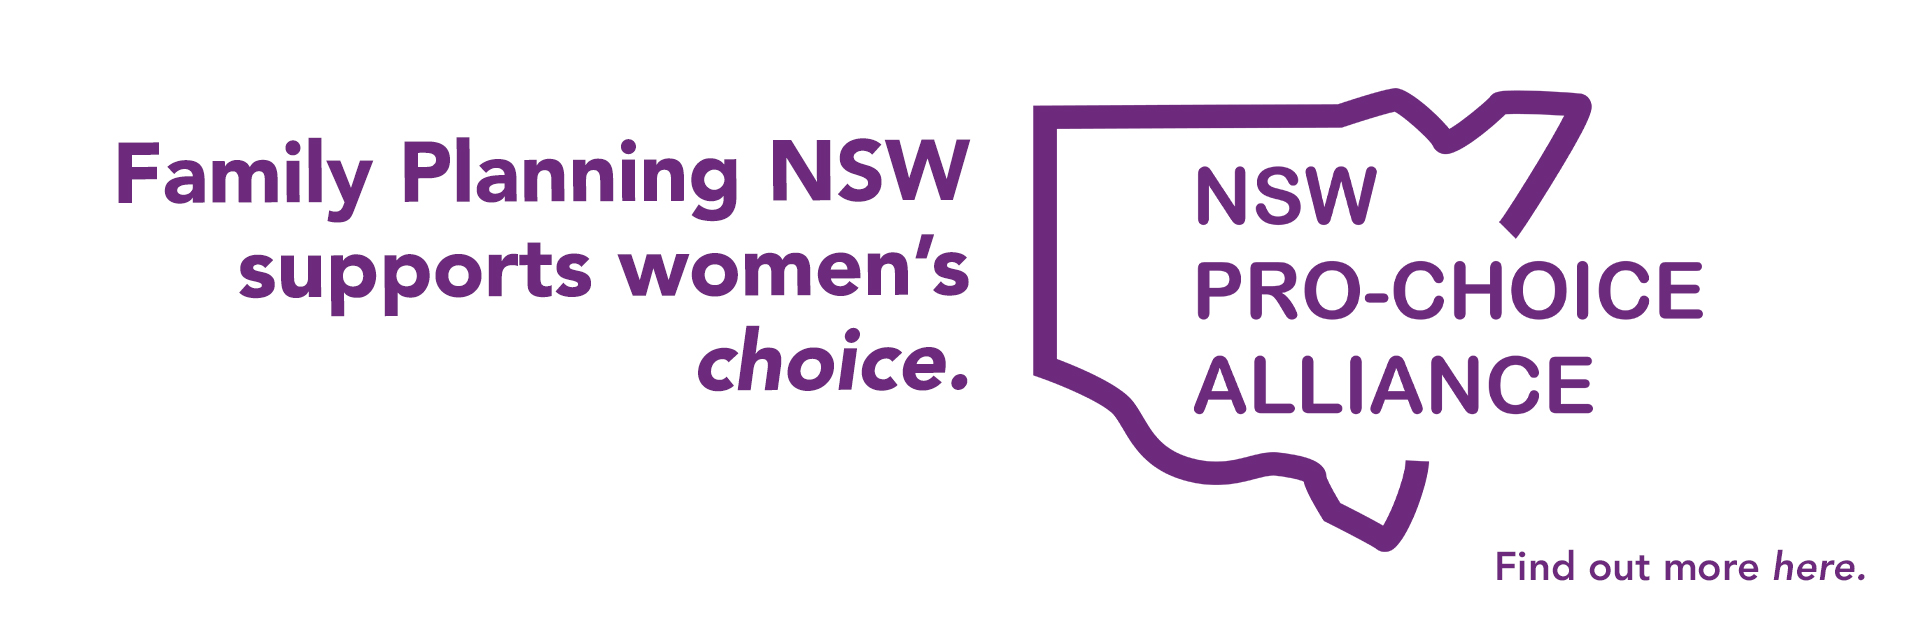 Pro-Choice Alliance campaign